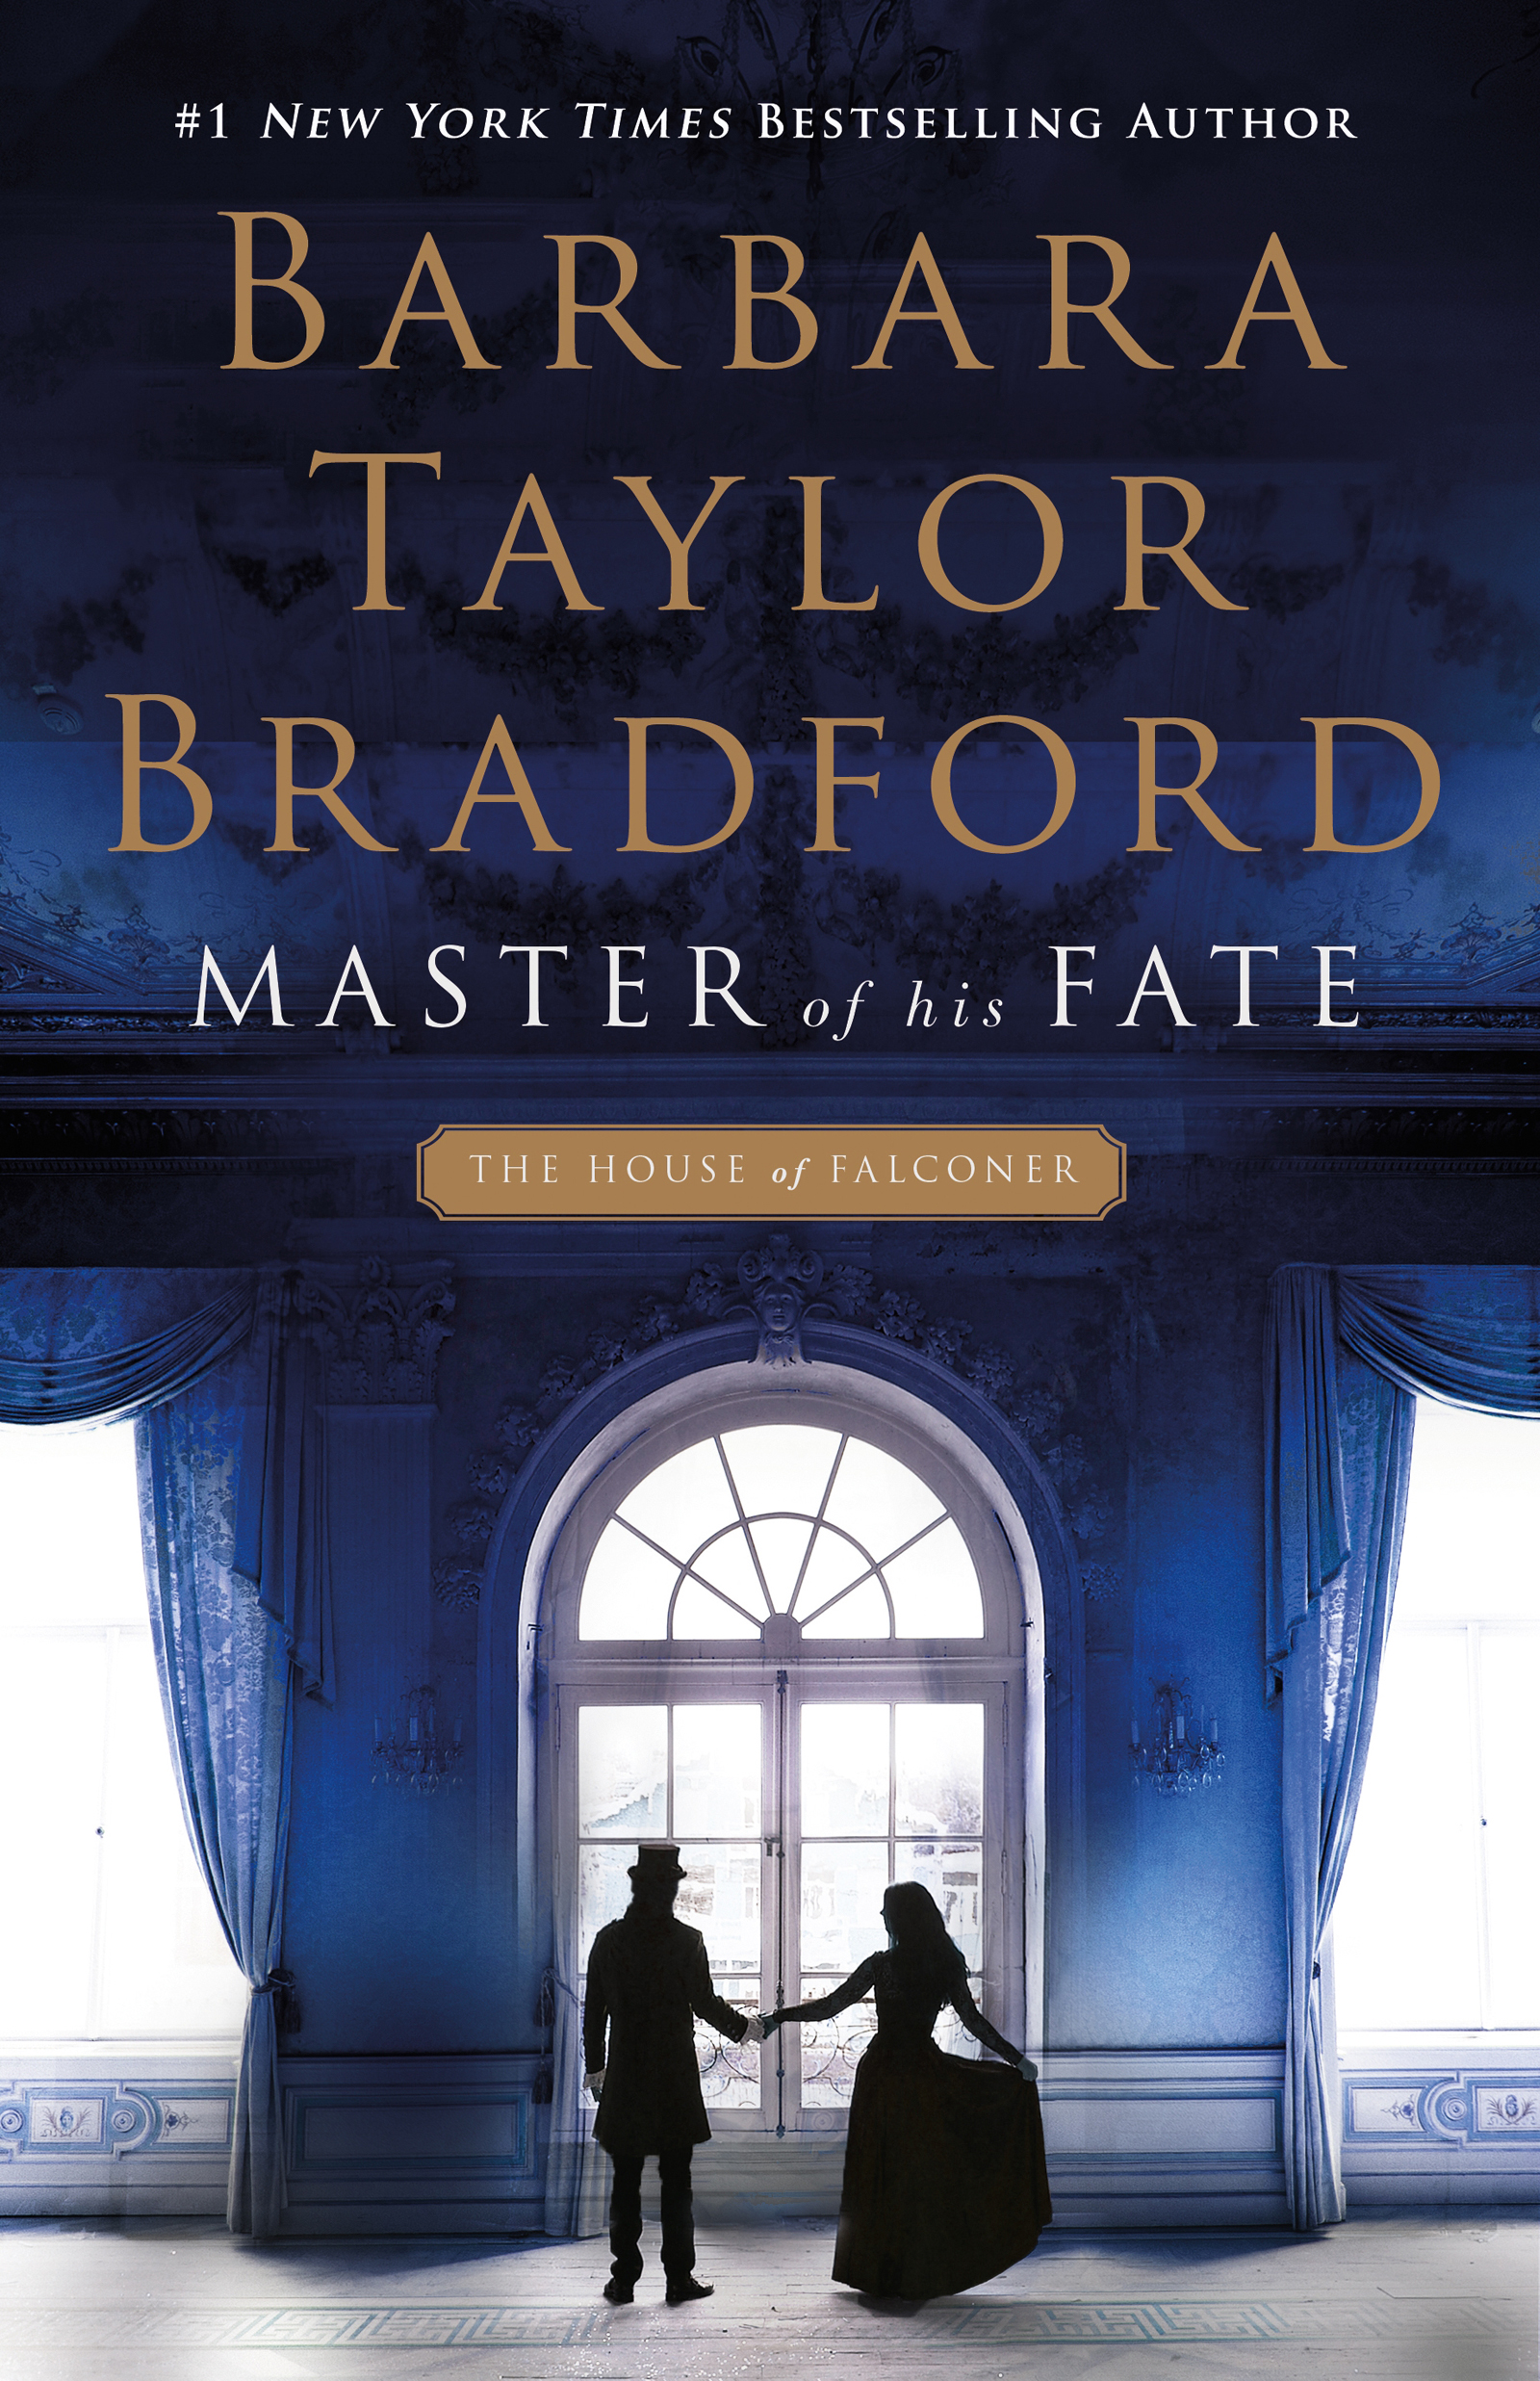 Master of His Fate: The House of Falconer 1st Edition Pdf Free Download